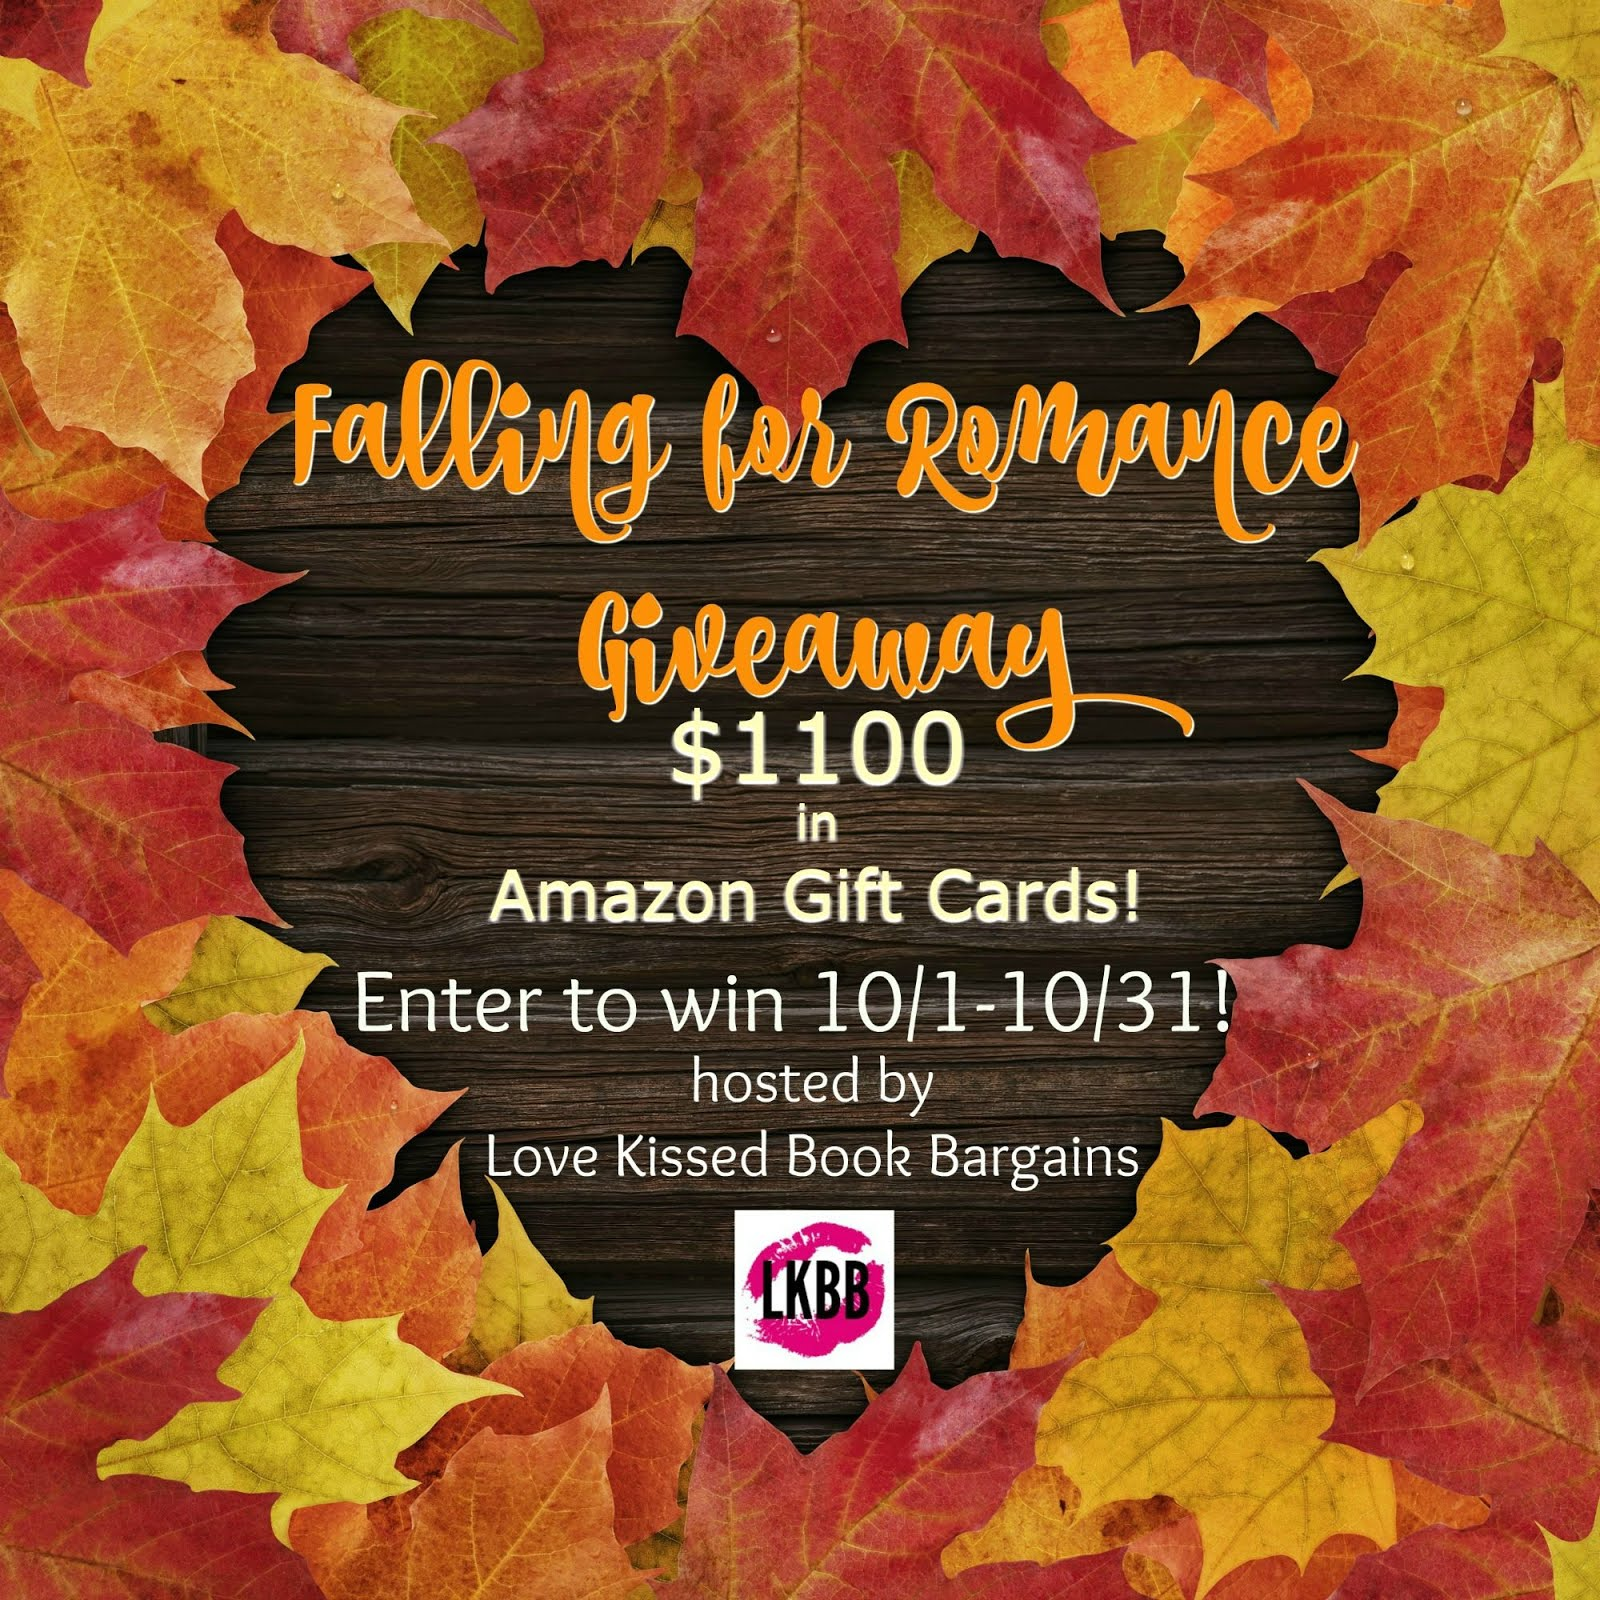 Falling for Romance Giveaway Oct 1-31